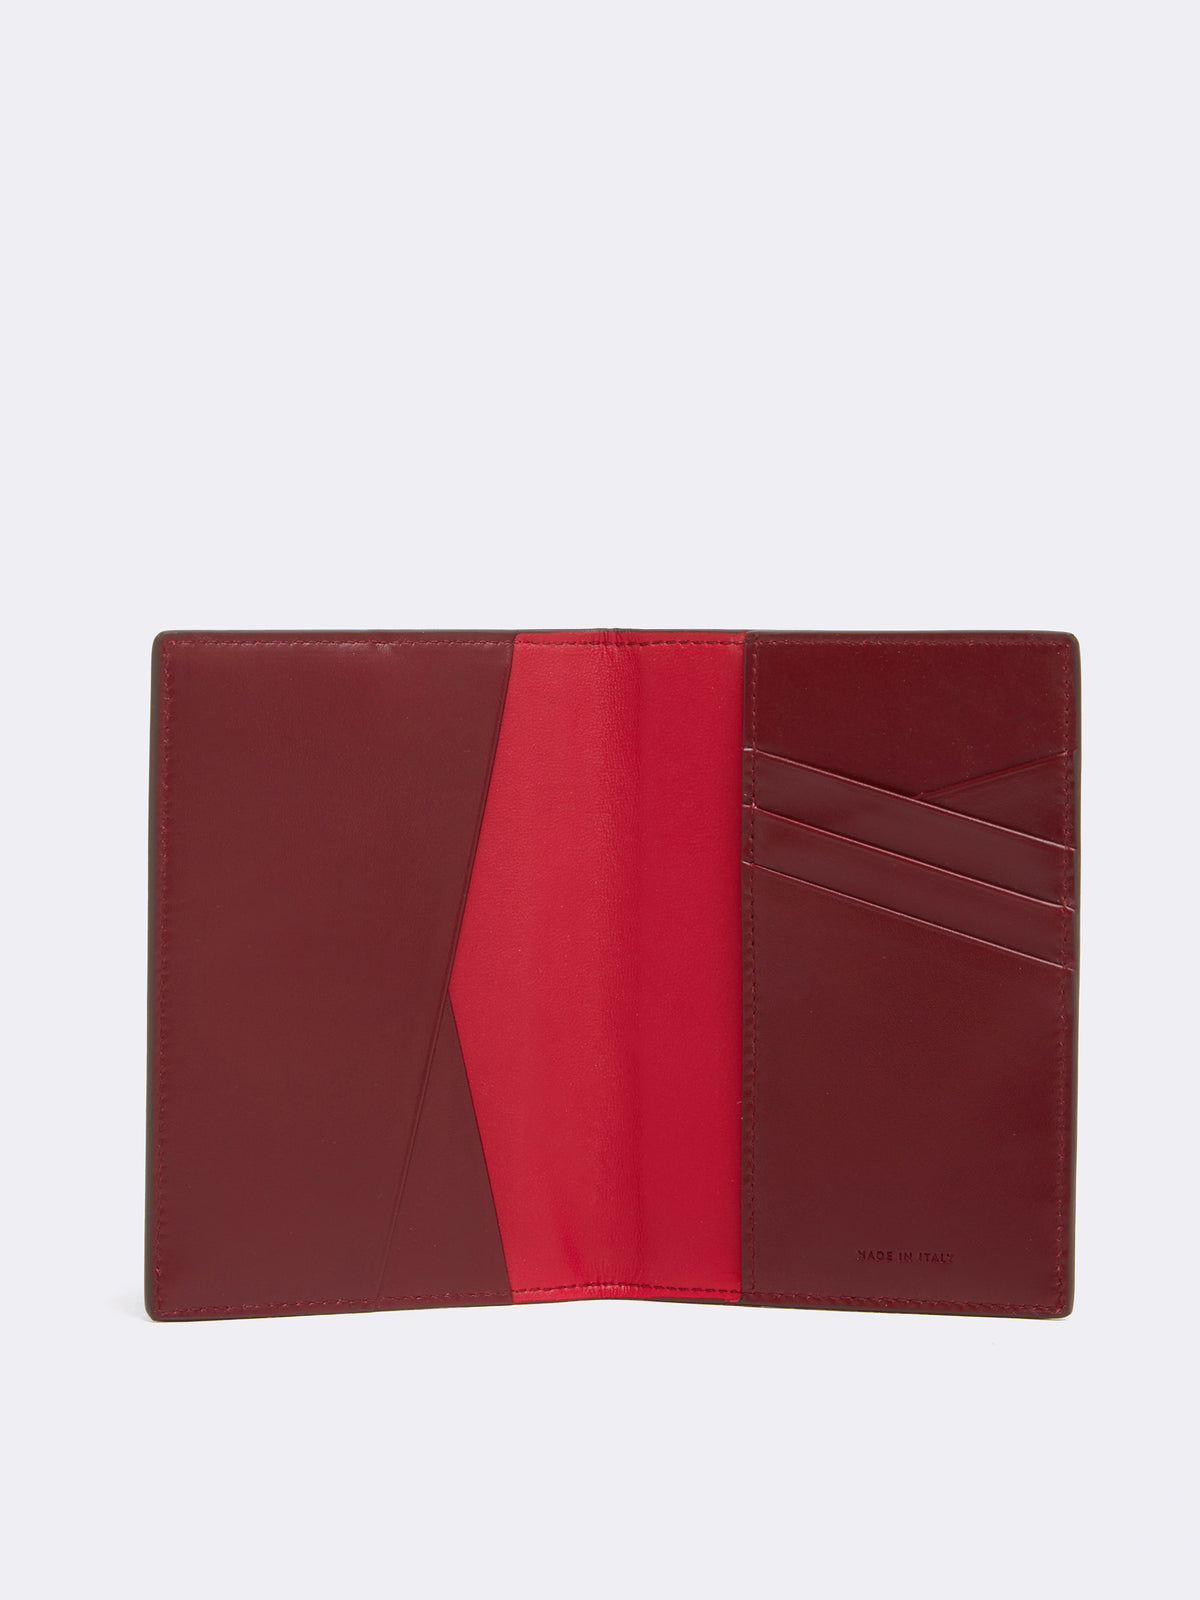 Mark Cross Leather Passport Cover Smooth Calf Burgundy Interior